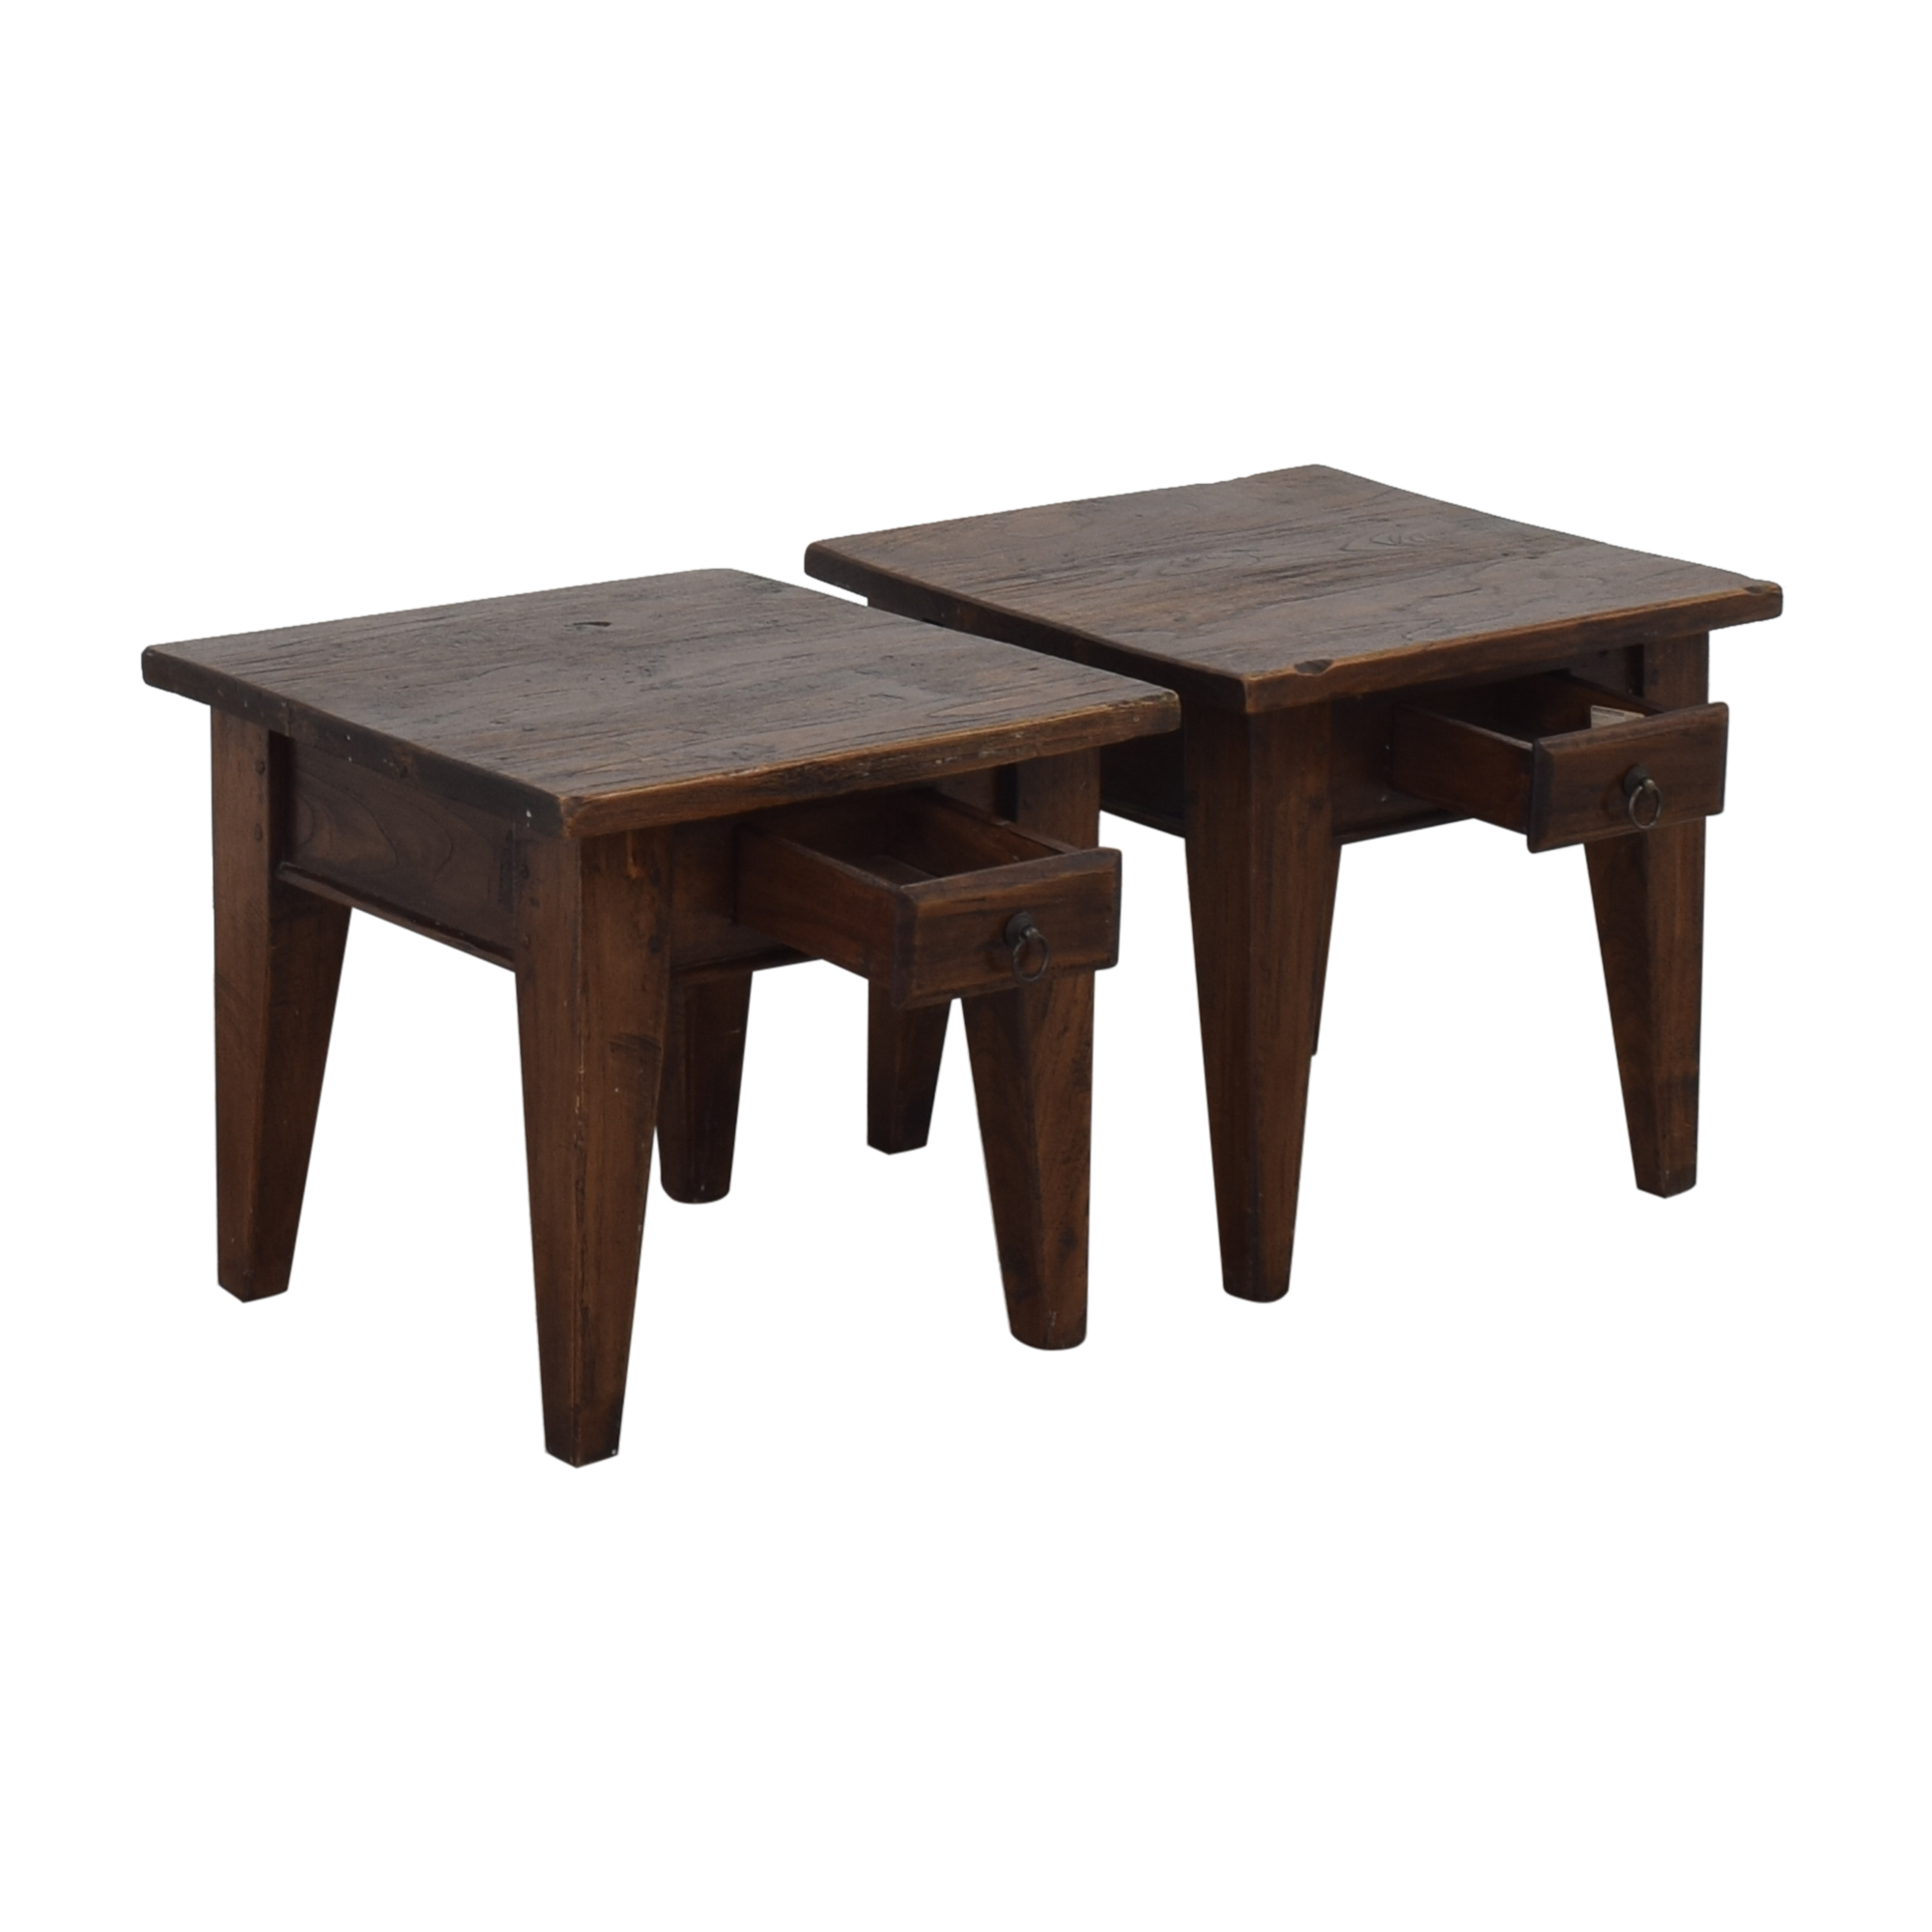 Lillian August Lillian August End Tables nyc